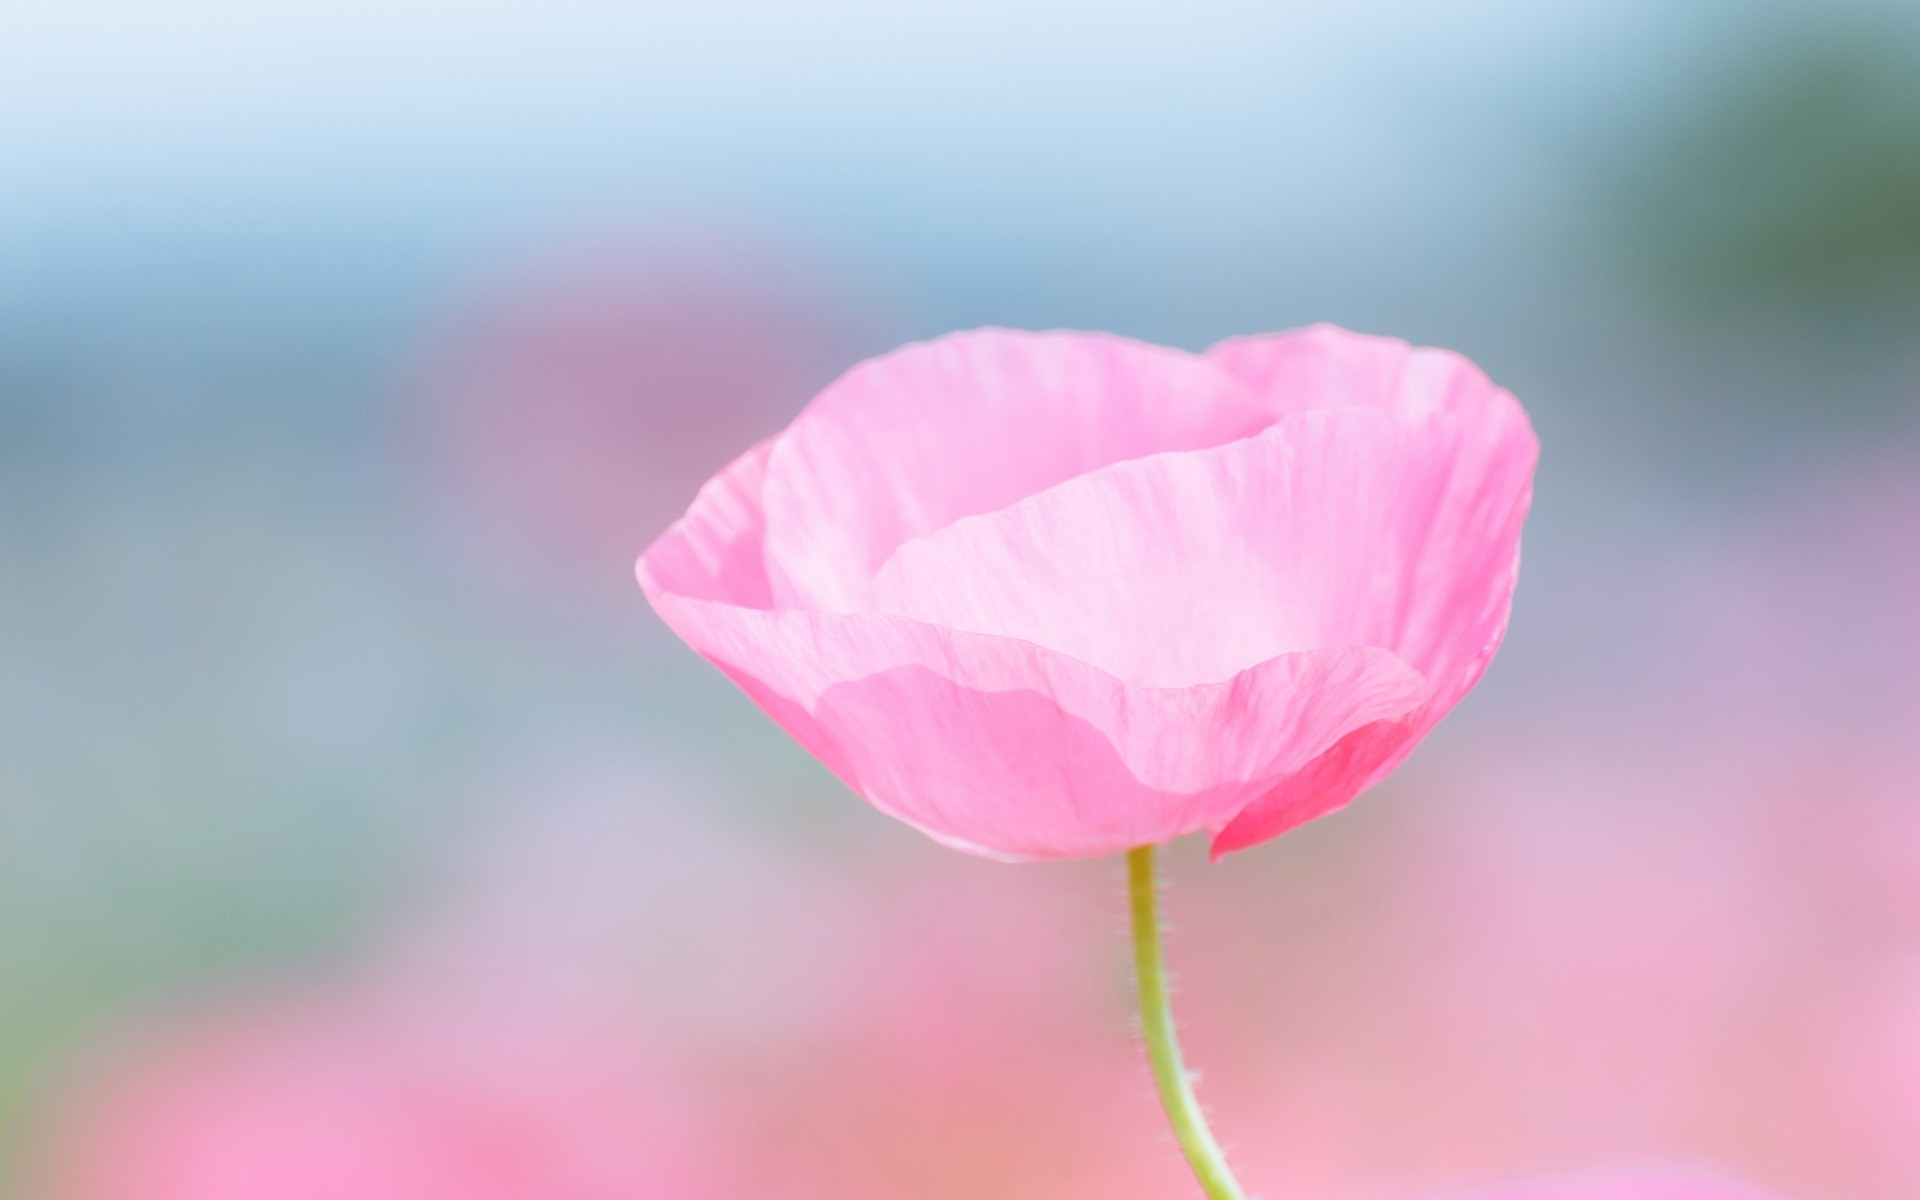 1920x1200 Poppy pink flower field close-up blurred wallpaper |  | 67751 |  WallpaperUP